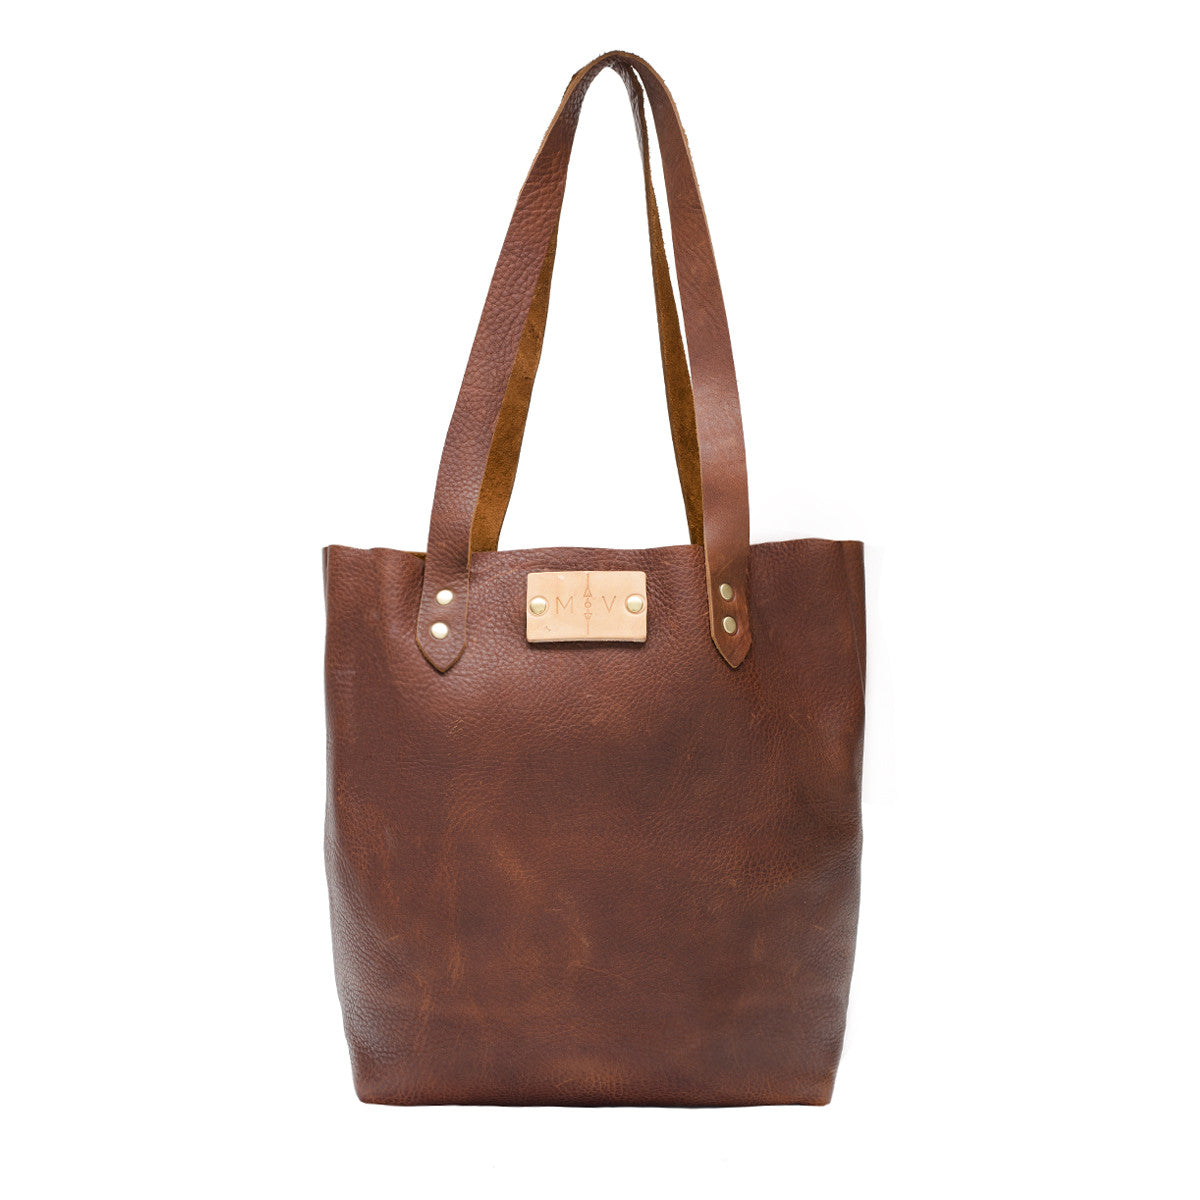 Copper Leather Sophia Tote Bag, Oil Tanned Leather Handbag